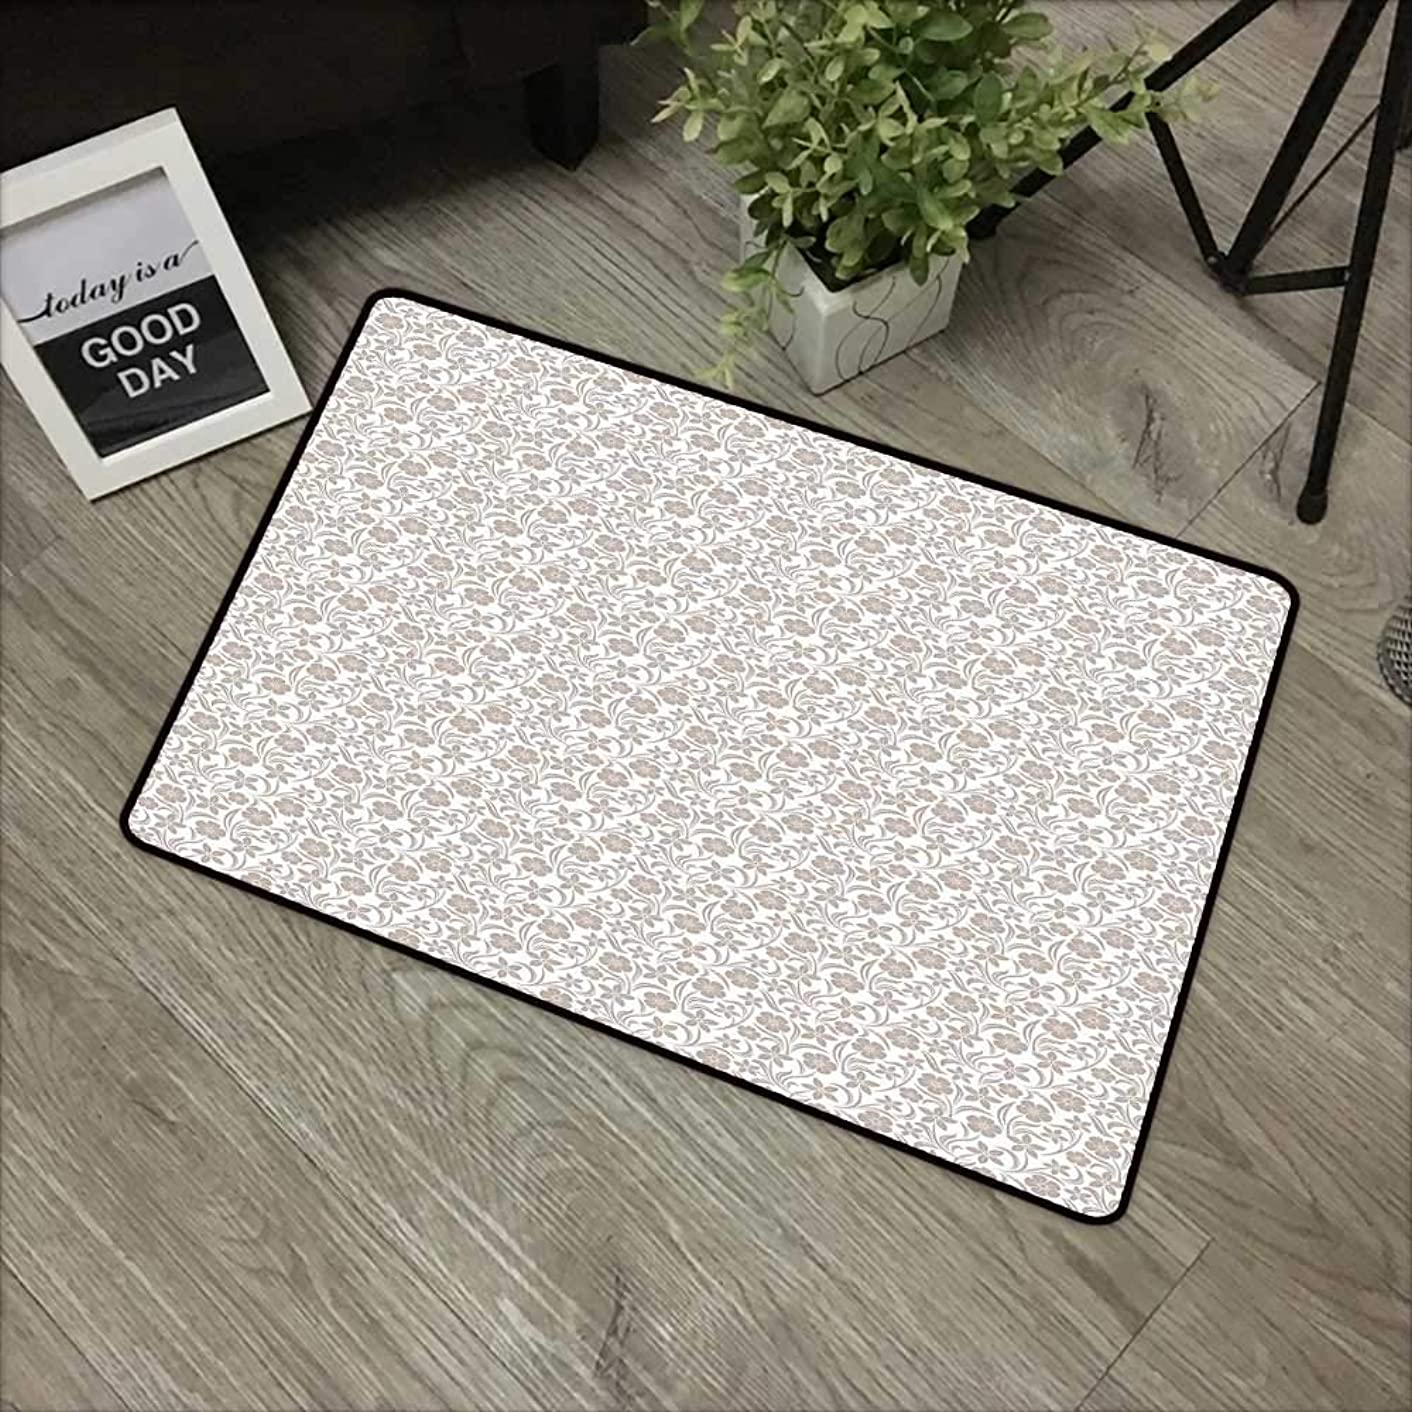 Hall mat W24 x L35 INCH Beige,Soft Gentle Floral Arrangement with Nature Inspirations Foliage Illustration Abstract,Tan White Easy to Clean, Easy to fold,Non-Slip Door Mat Carpet